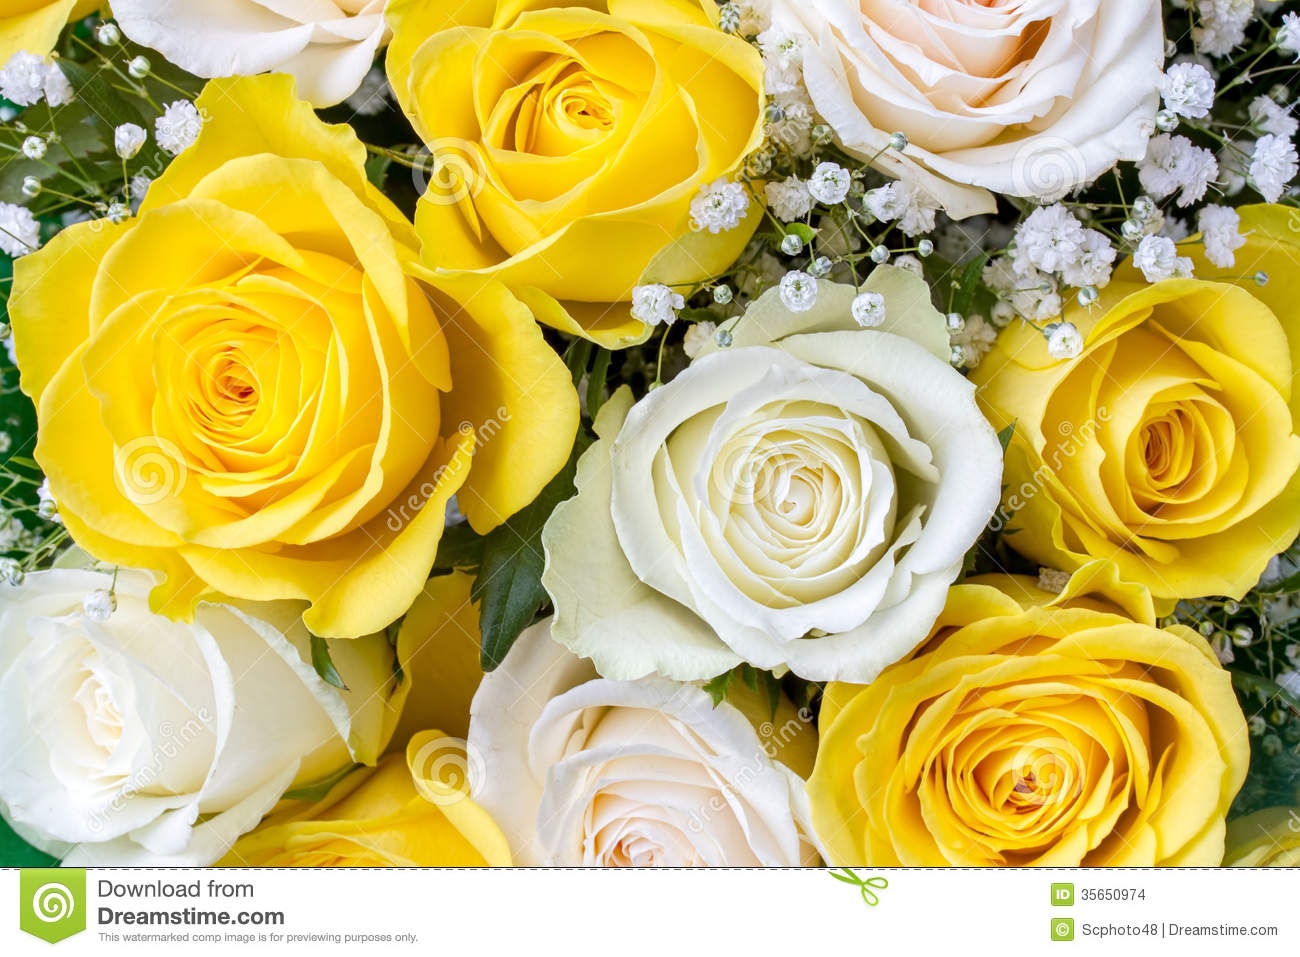 Bouquet des roses jaunes et blanches photo stock image for Bouquet de roses blanches